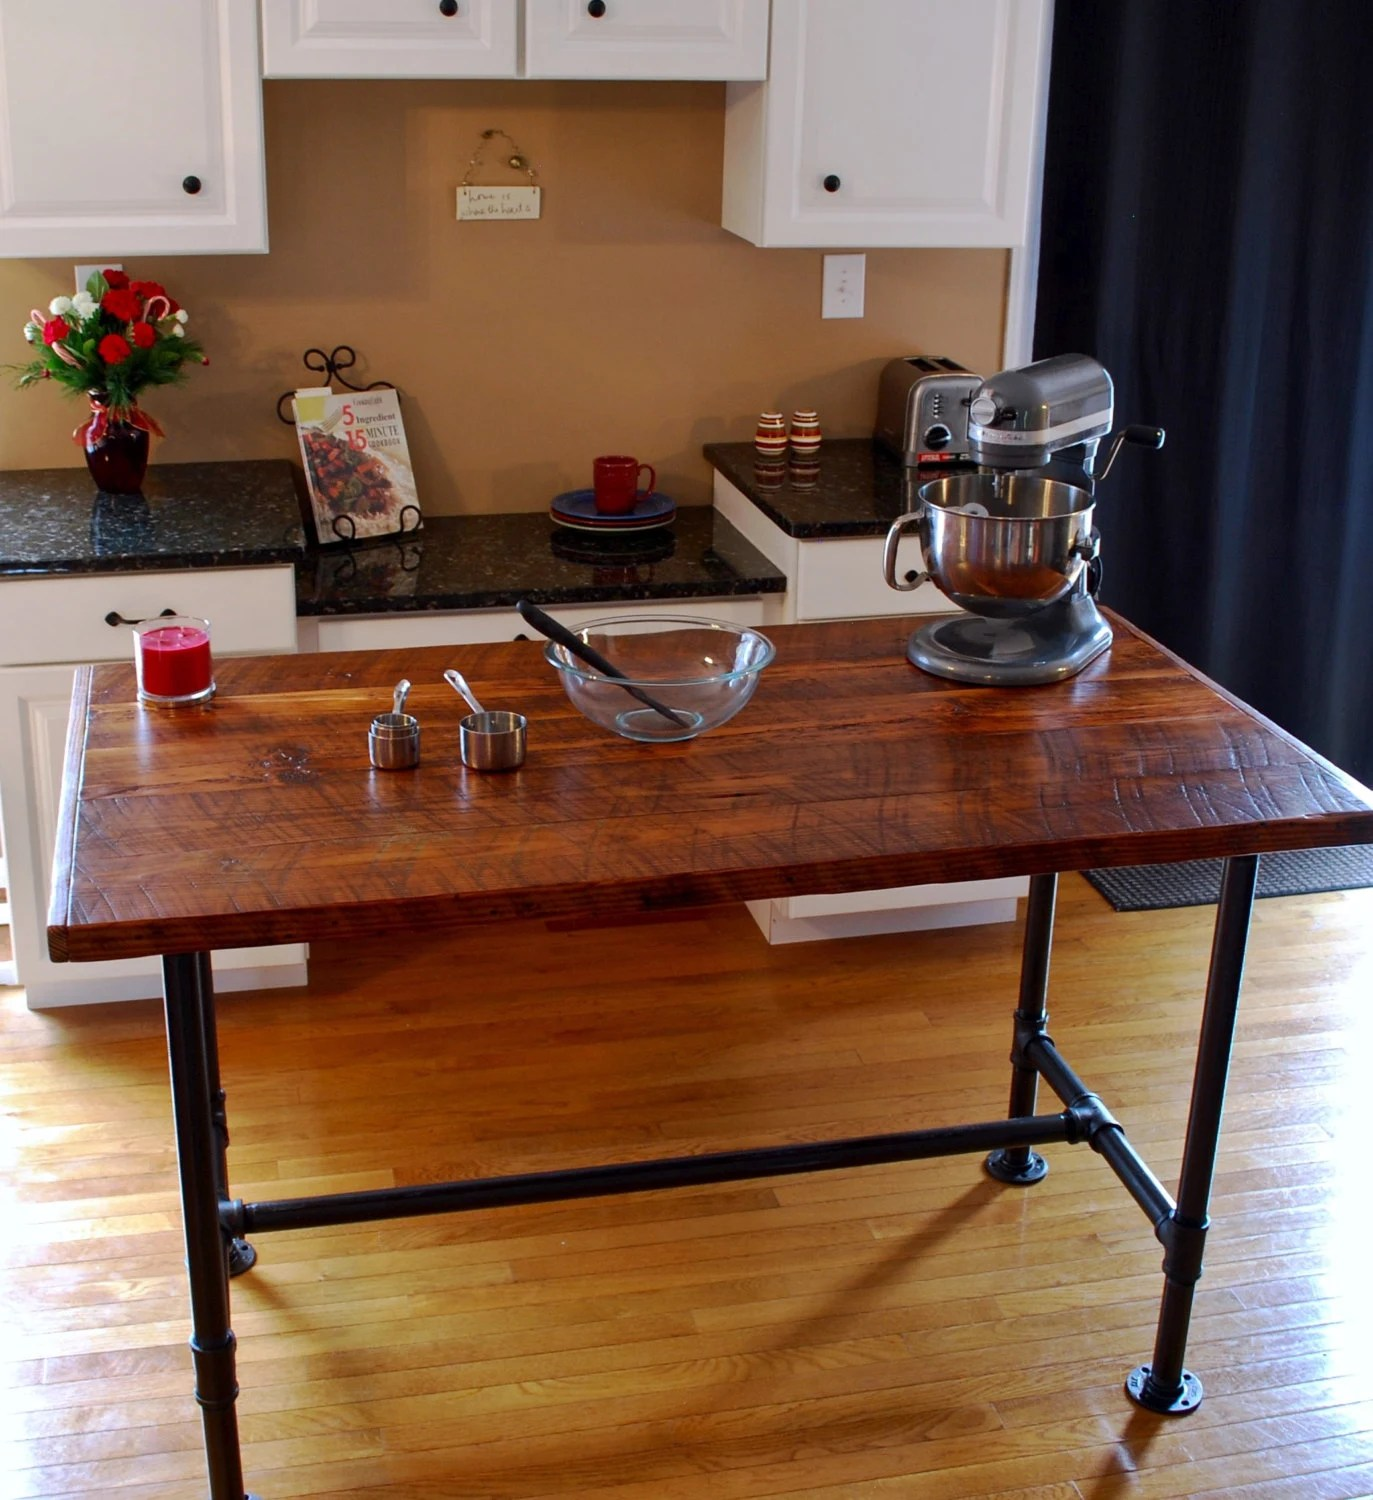 kitchen prep table industrial lighting island pipe etsy image 0